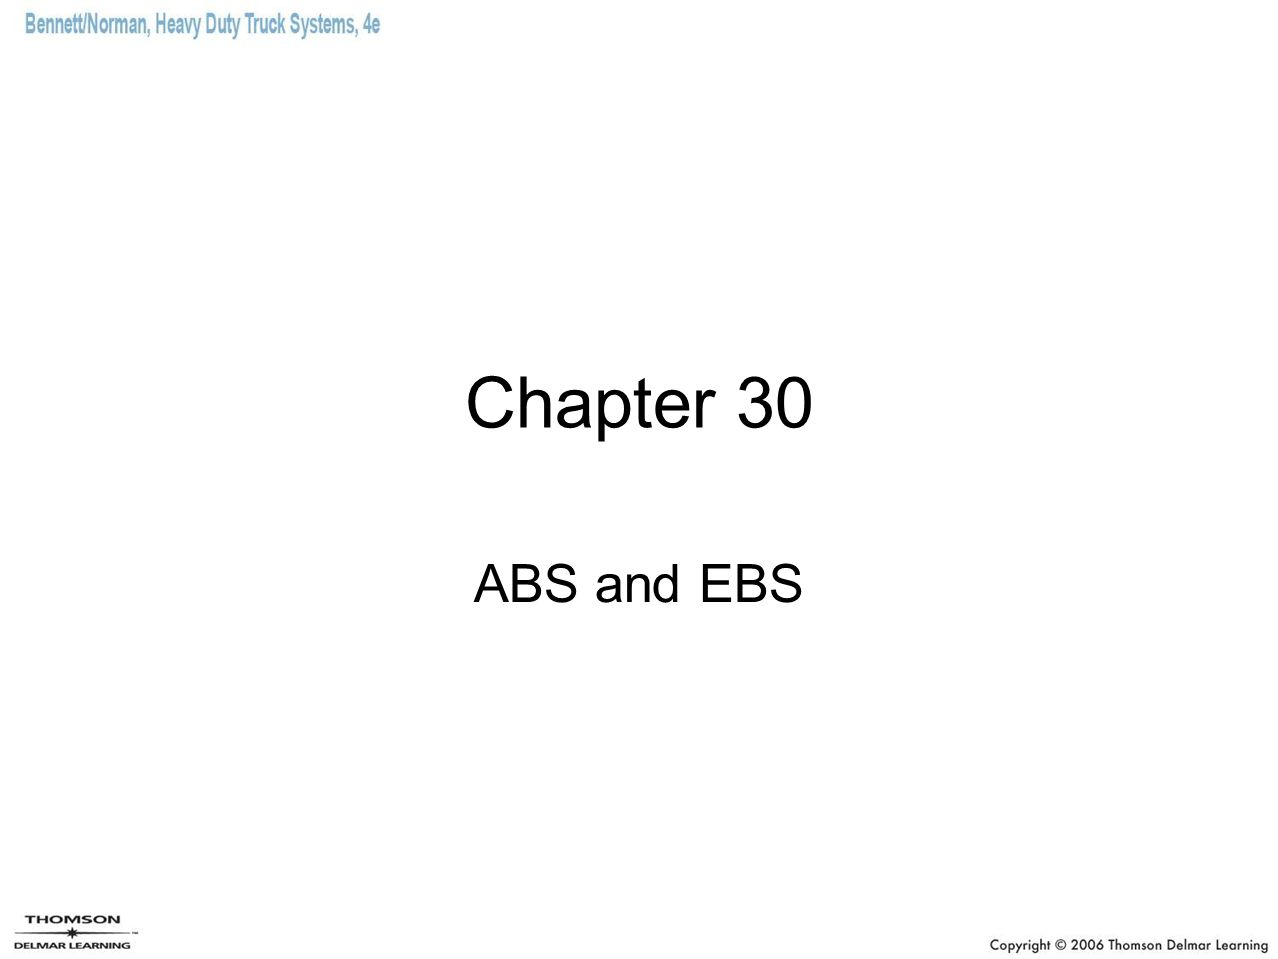 Chapter 30 ABS and EBS